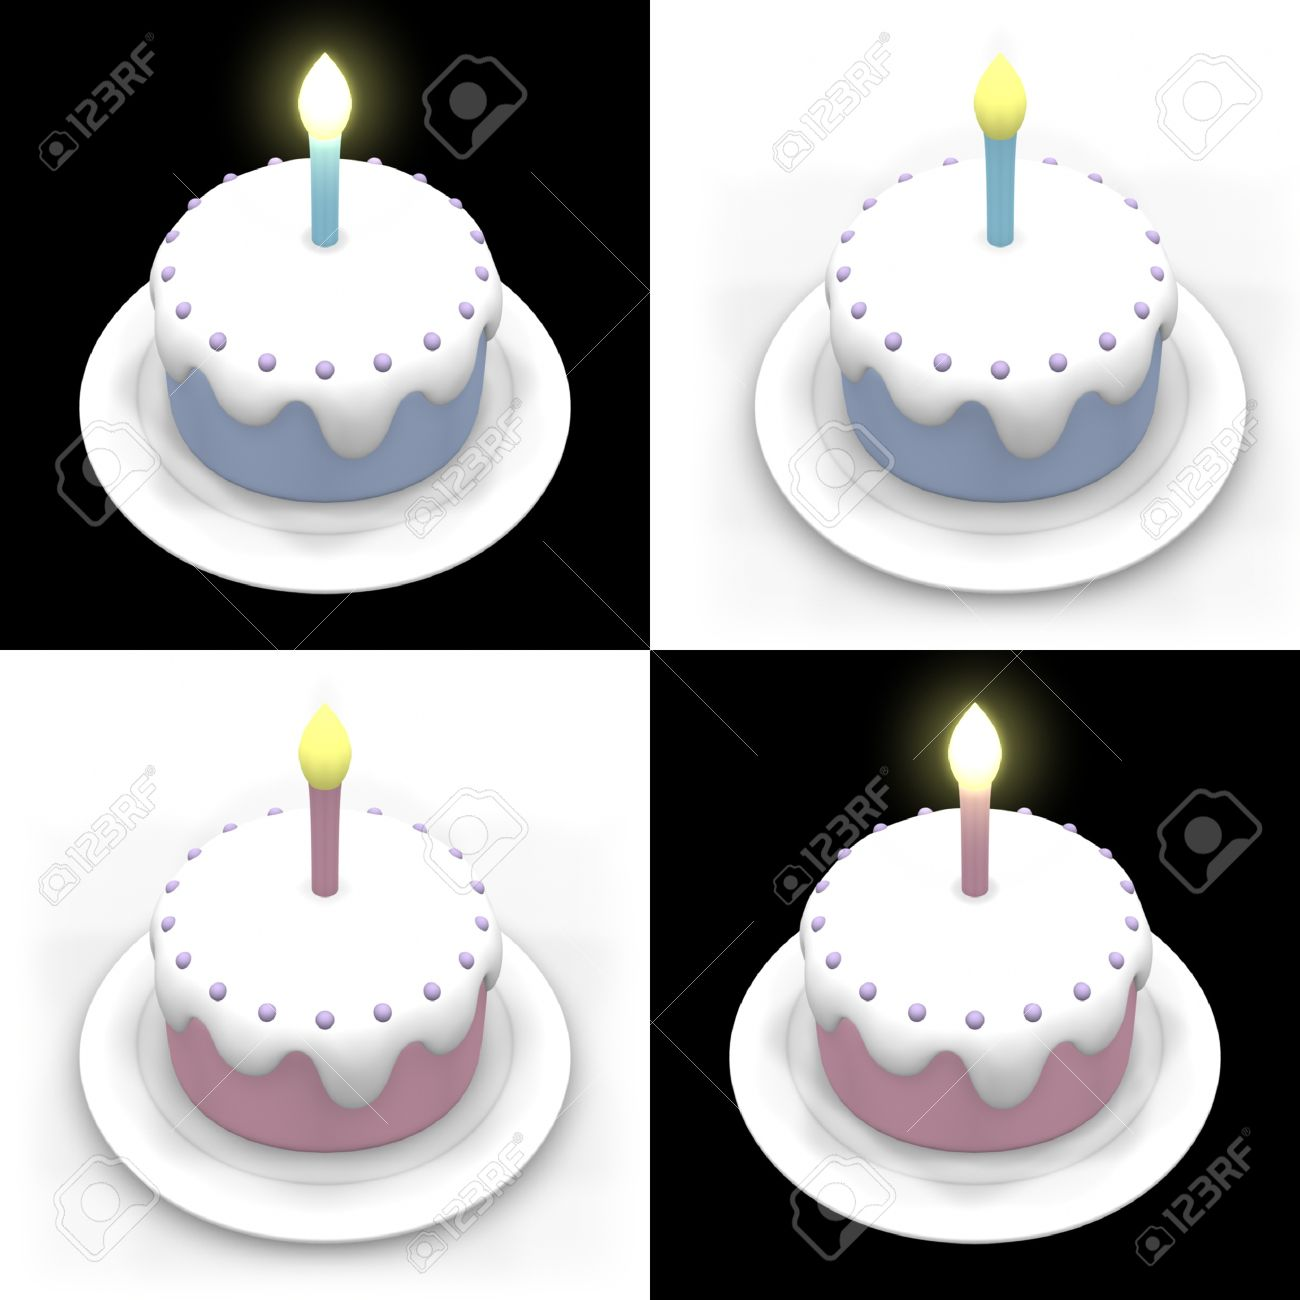 3d Model Of Blue And Pink Birthday Cakes In Black And White